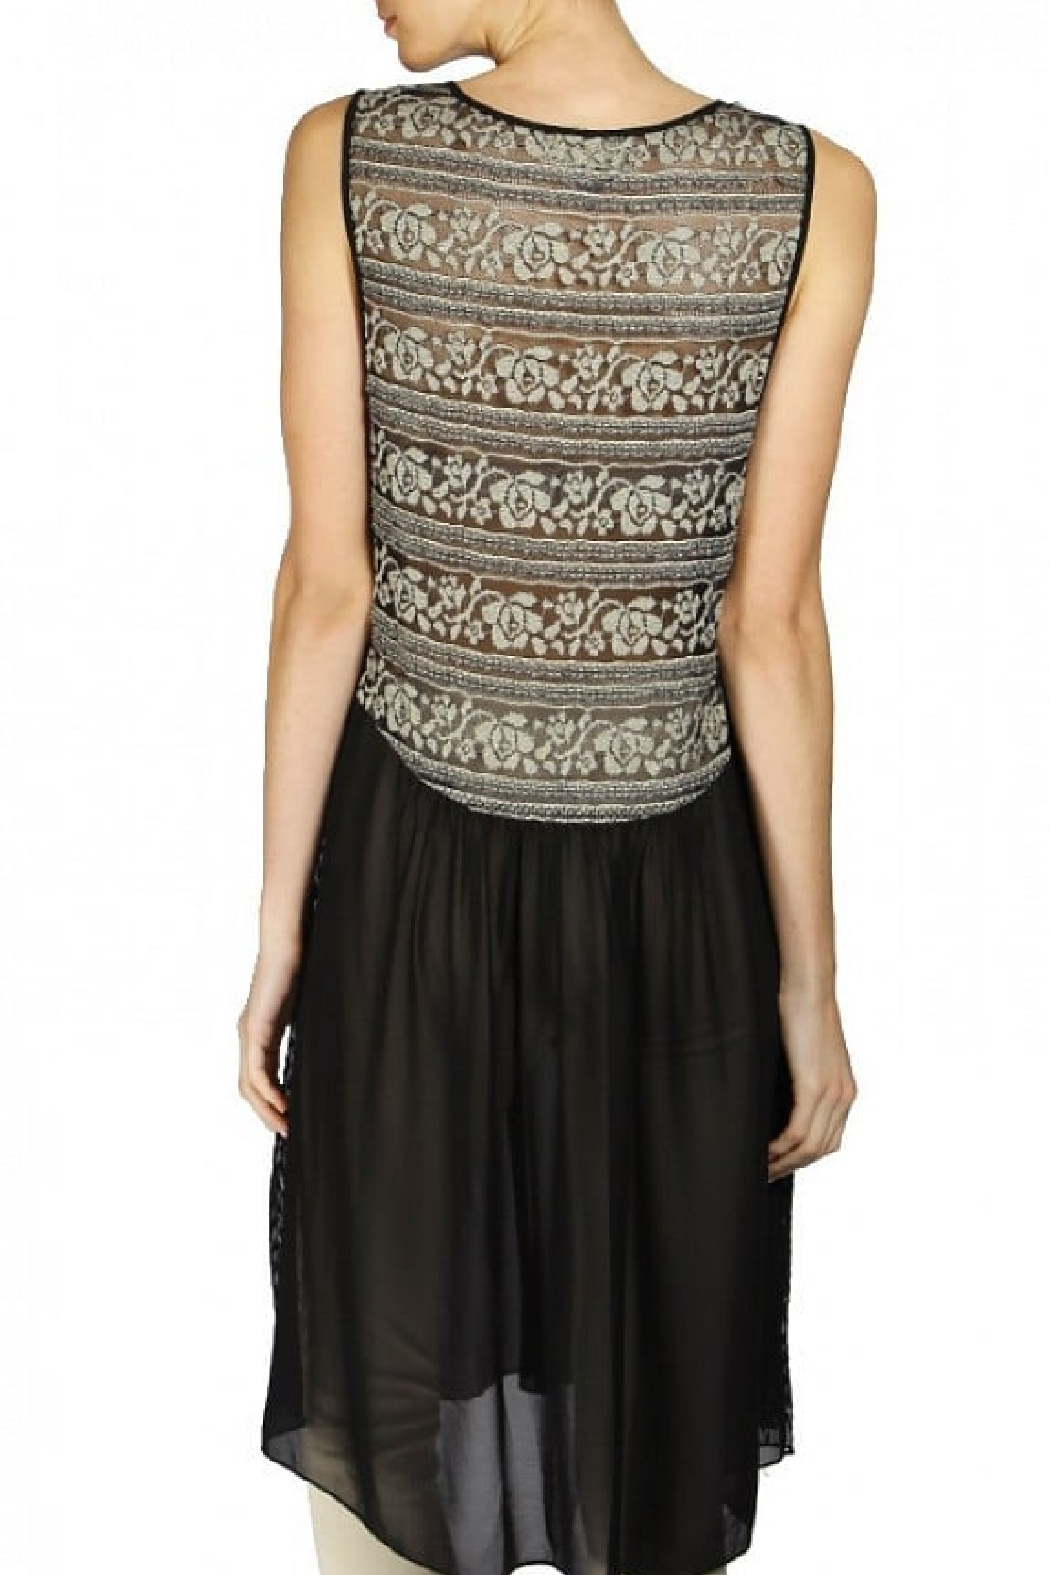 A'reve  Black and Taupe Lace Dress/Tunic - Front Full Image